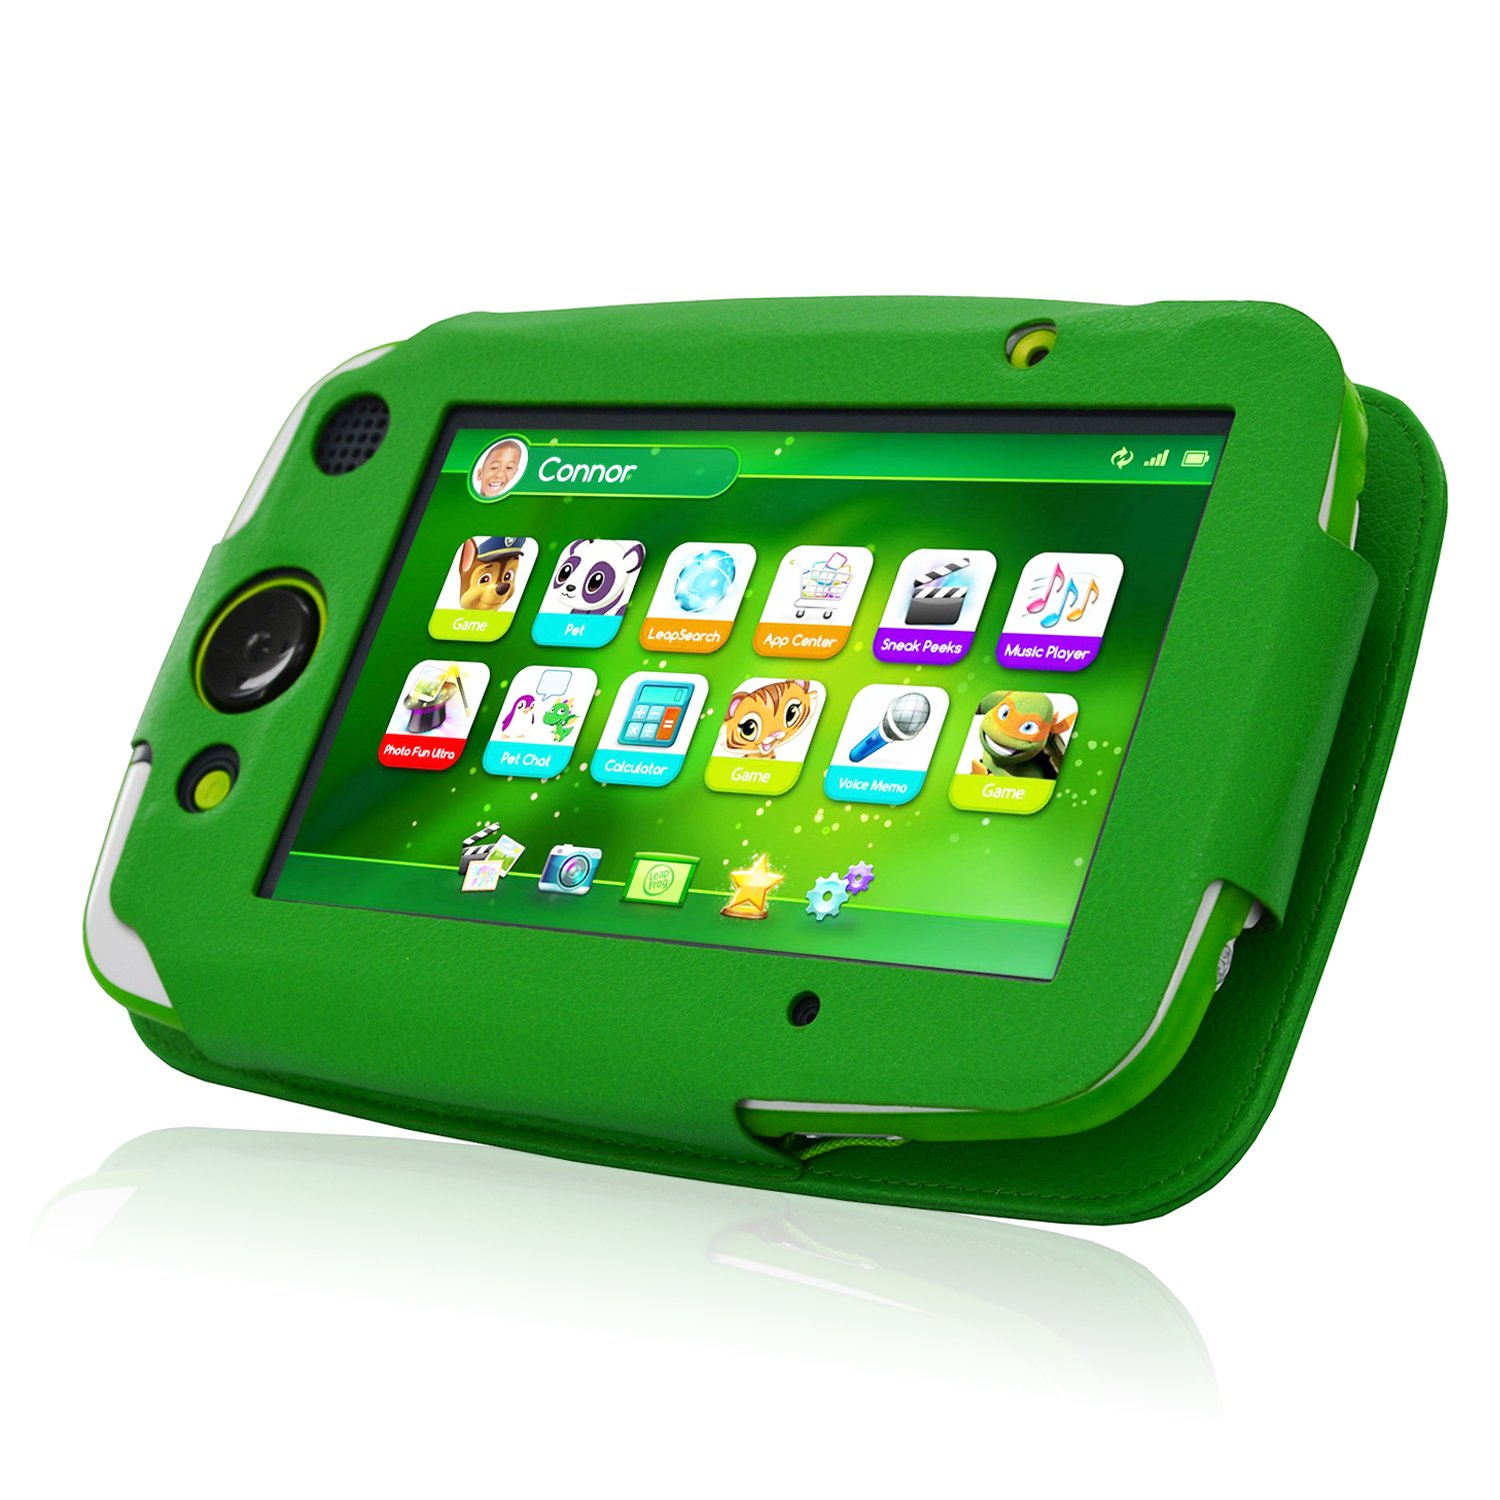 ACdream LeapPad Platinum Case, PU Leather Cover Case for LeapFrog LeapPad Platinum Kids Learning Tablet (NOT FIT LeapPad3), Green by ACdream (Image #3)